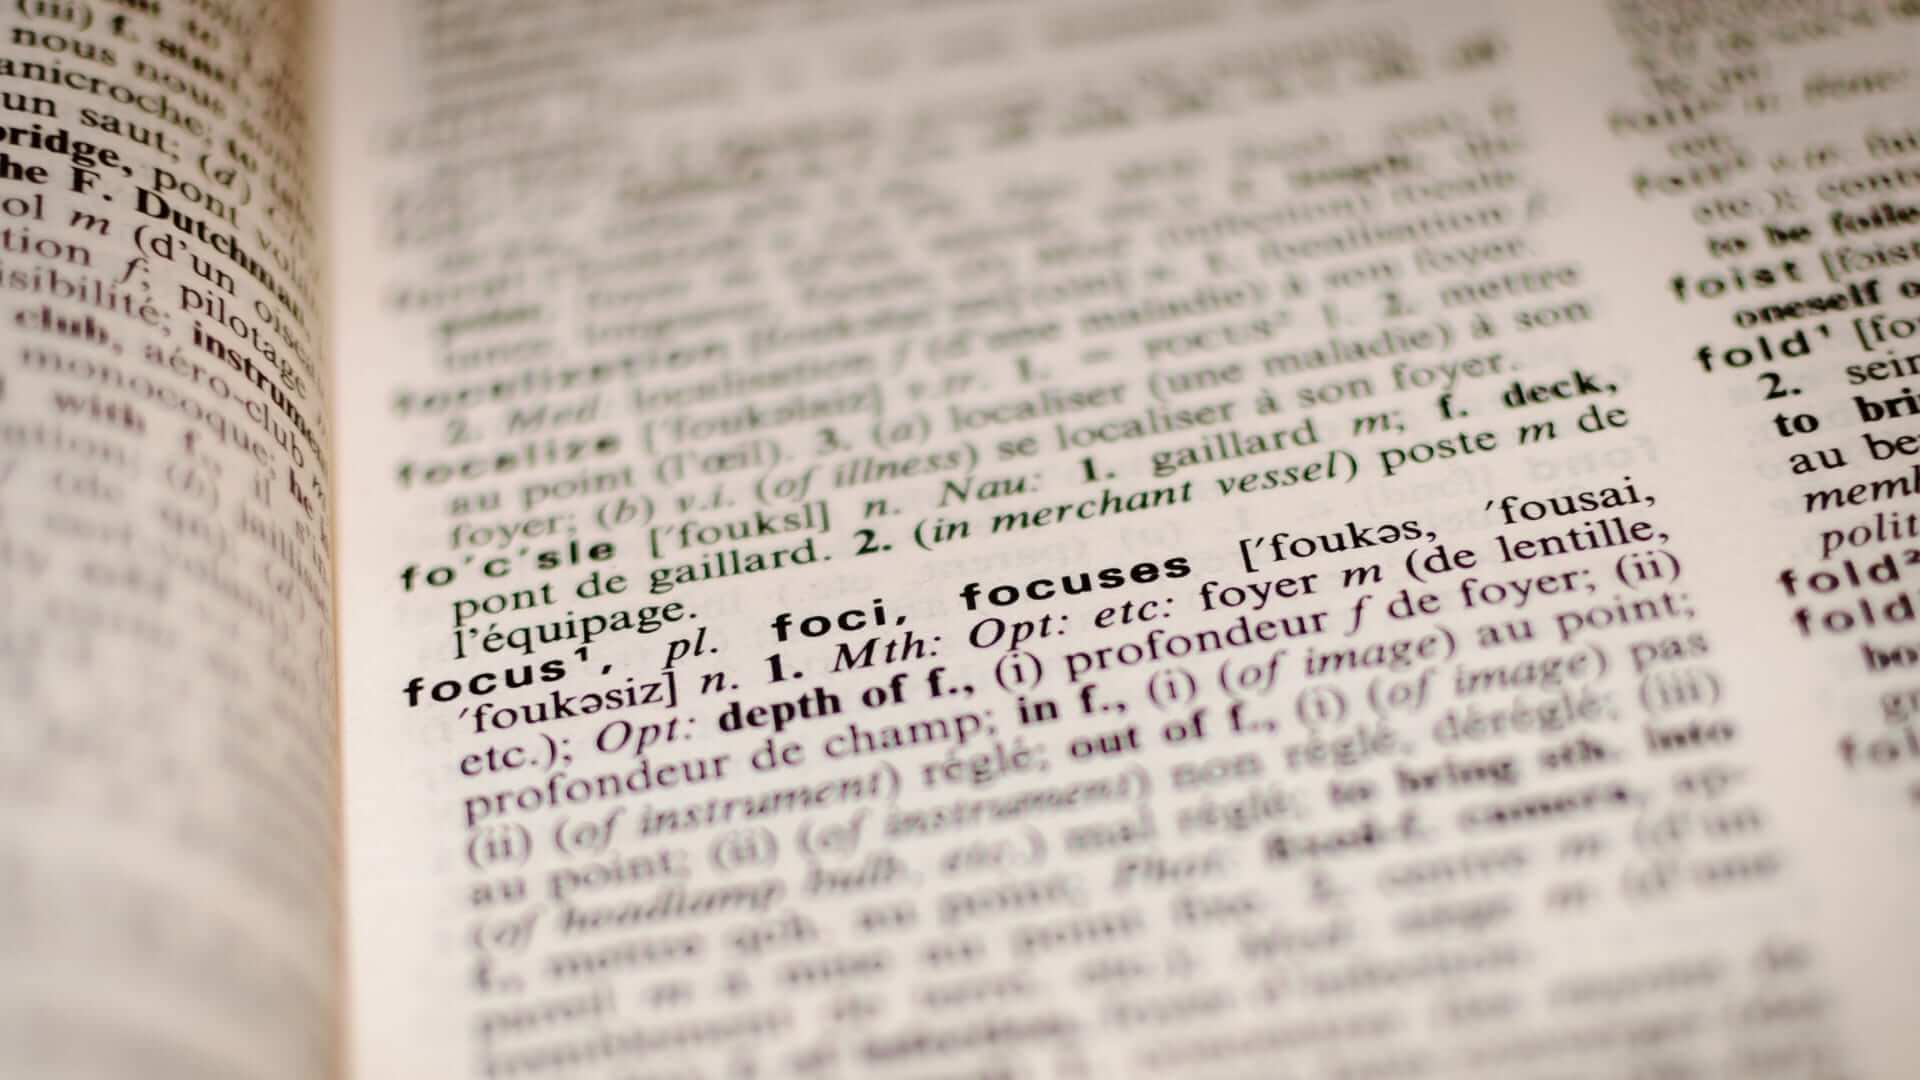 The word focus is the only word that is not blurry in a dictionary.